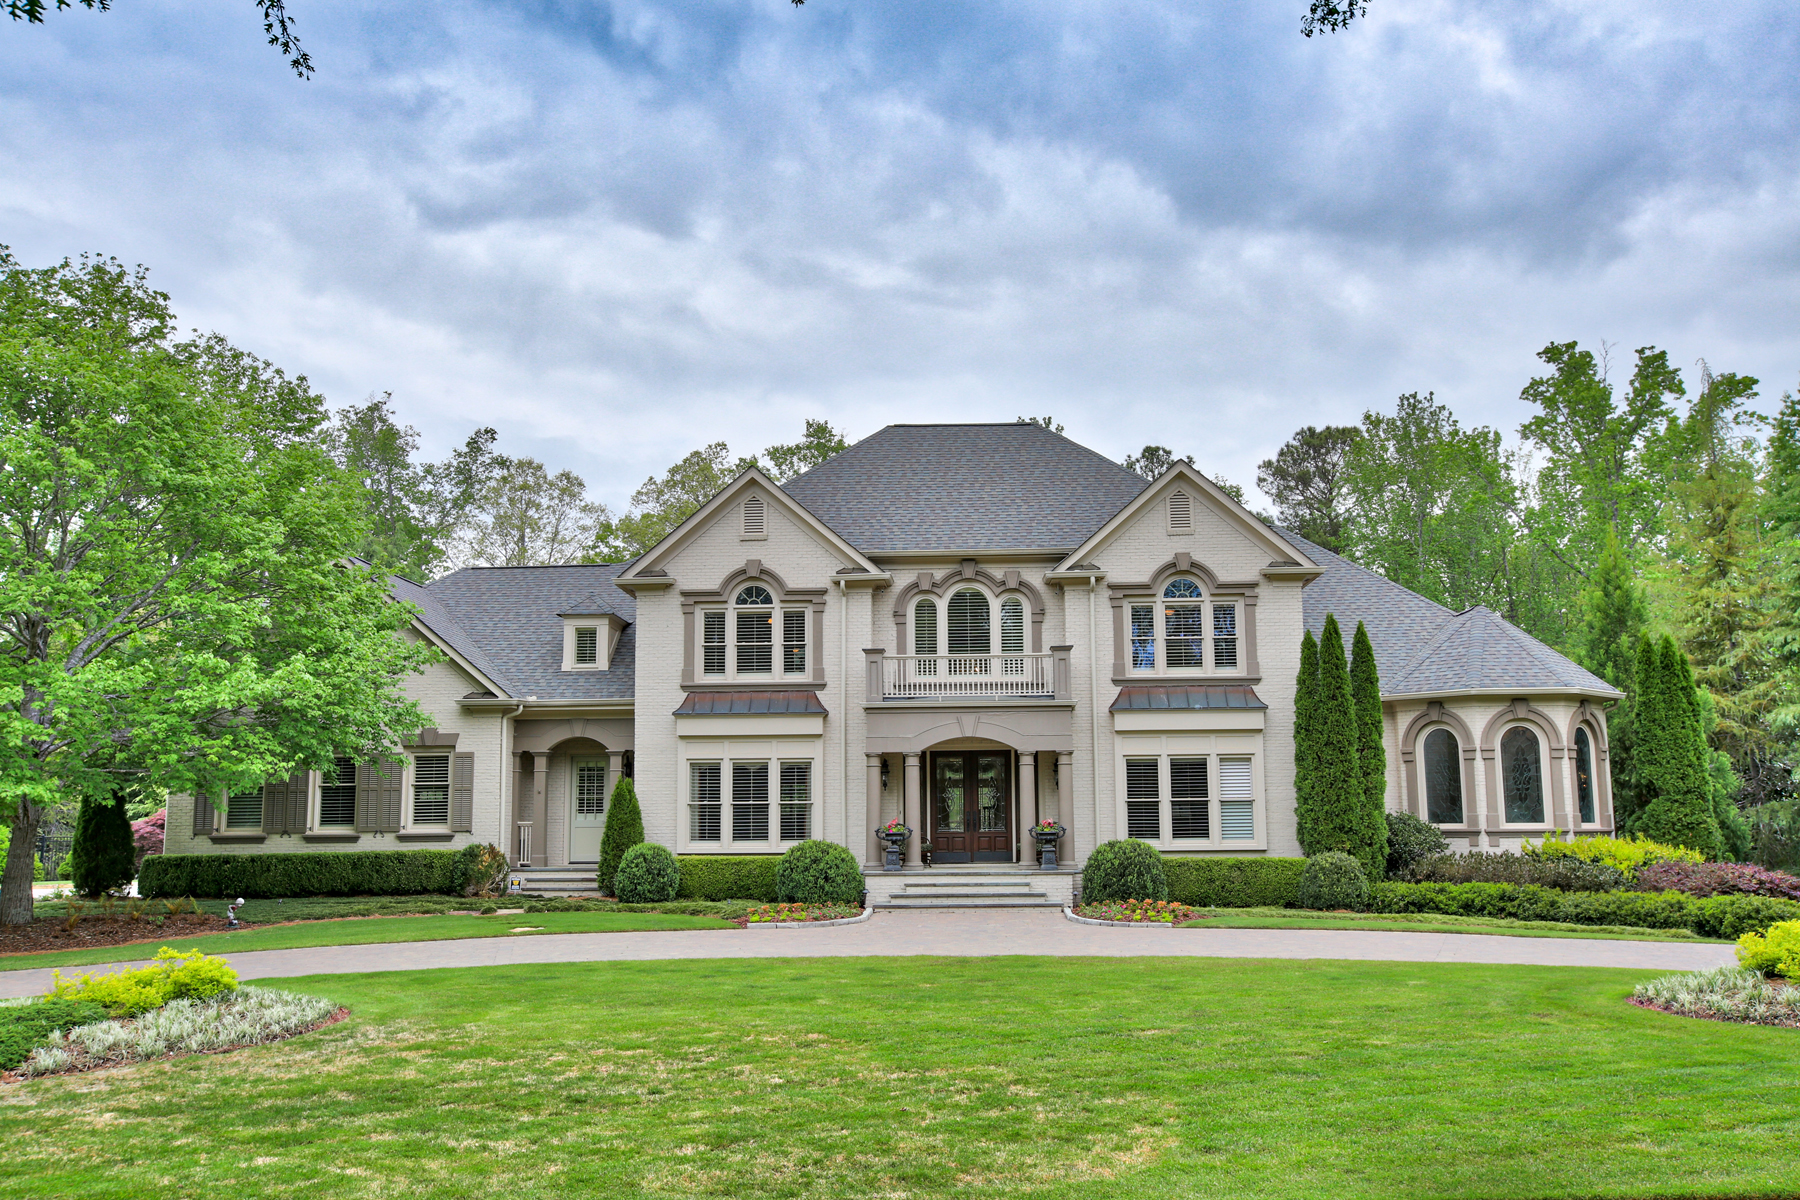 Single Family Home for Active at IncomparableRoswellEstate 810 Hedgegate Court Roswell, Georgia 30075 United States